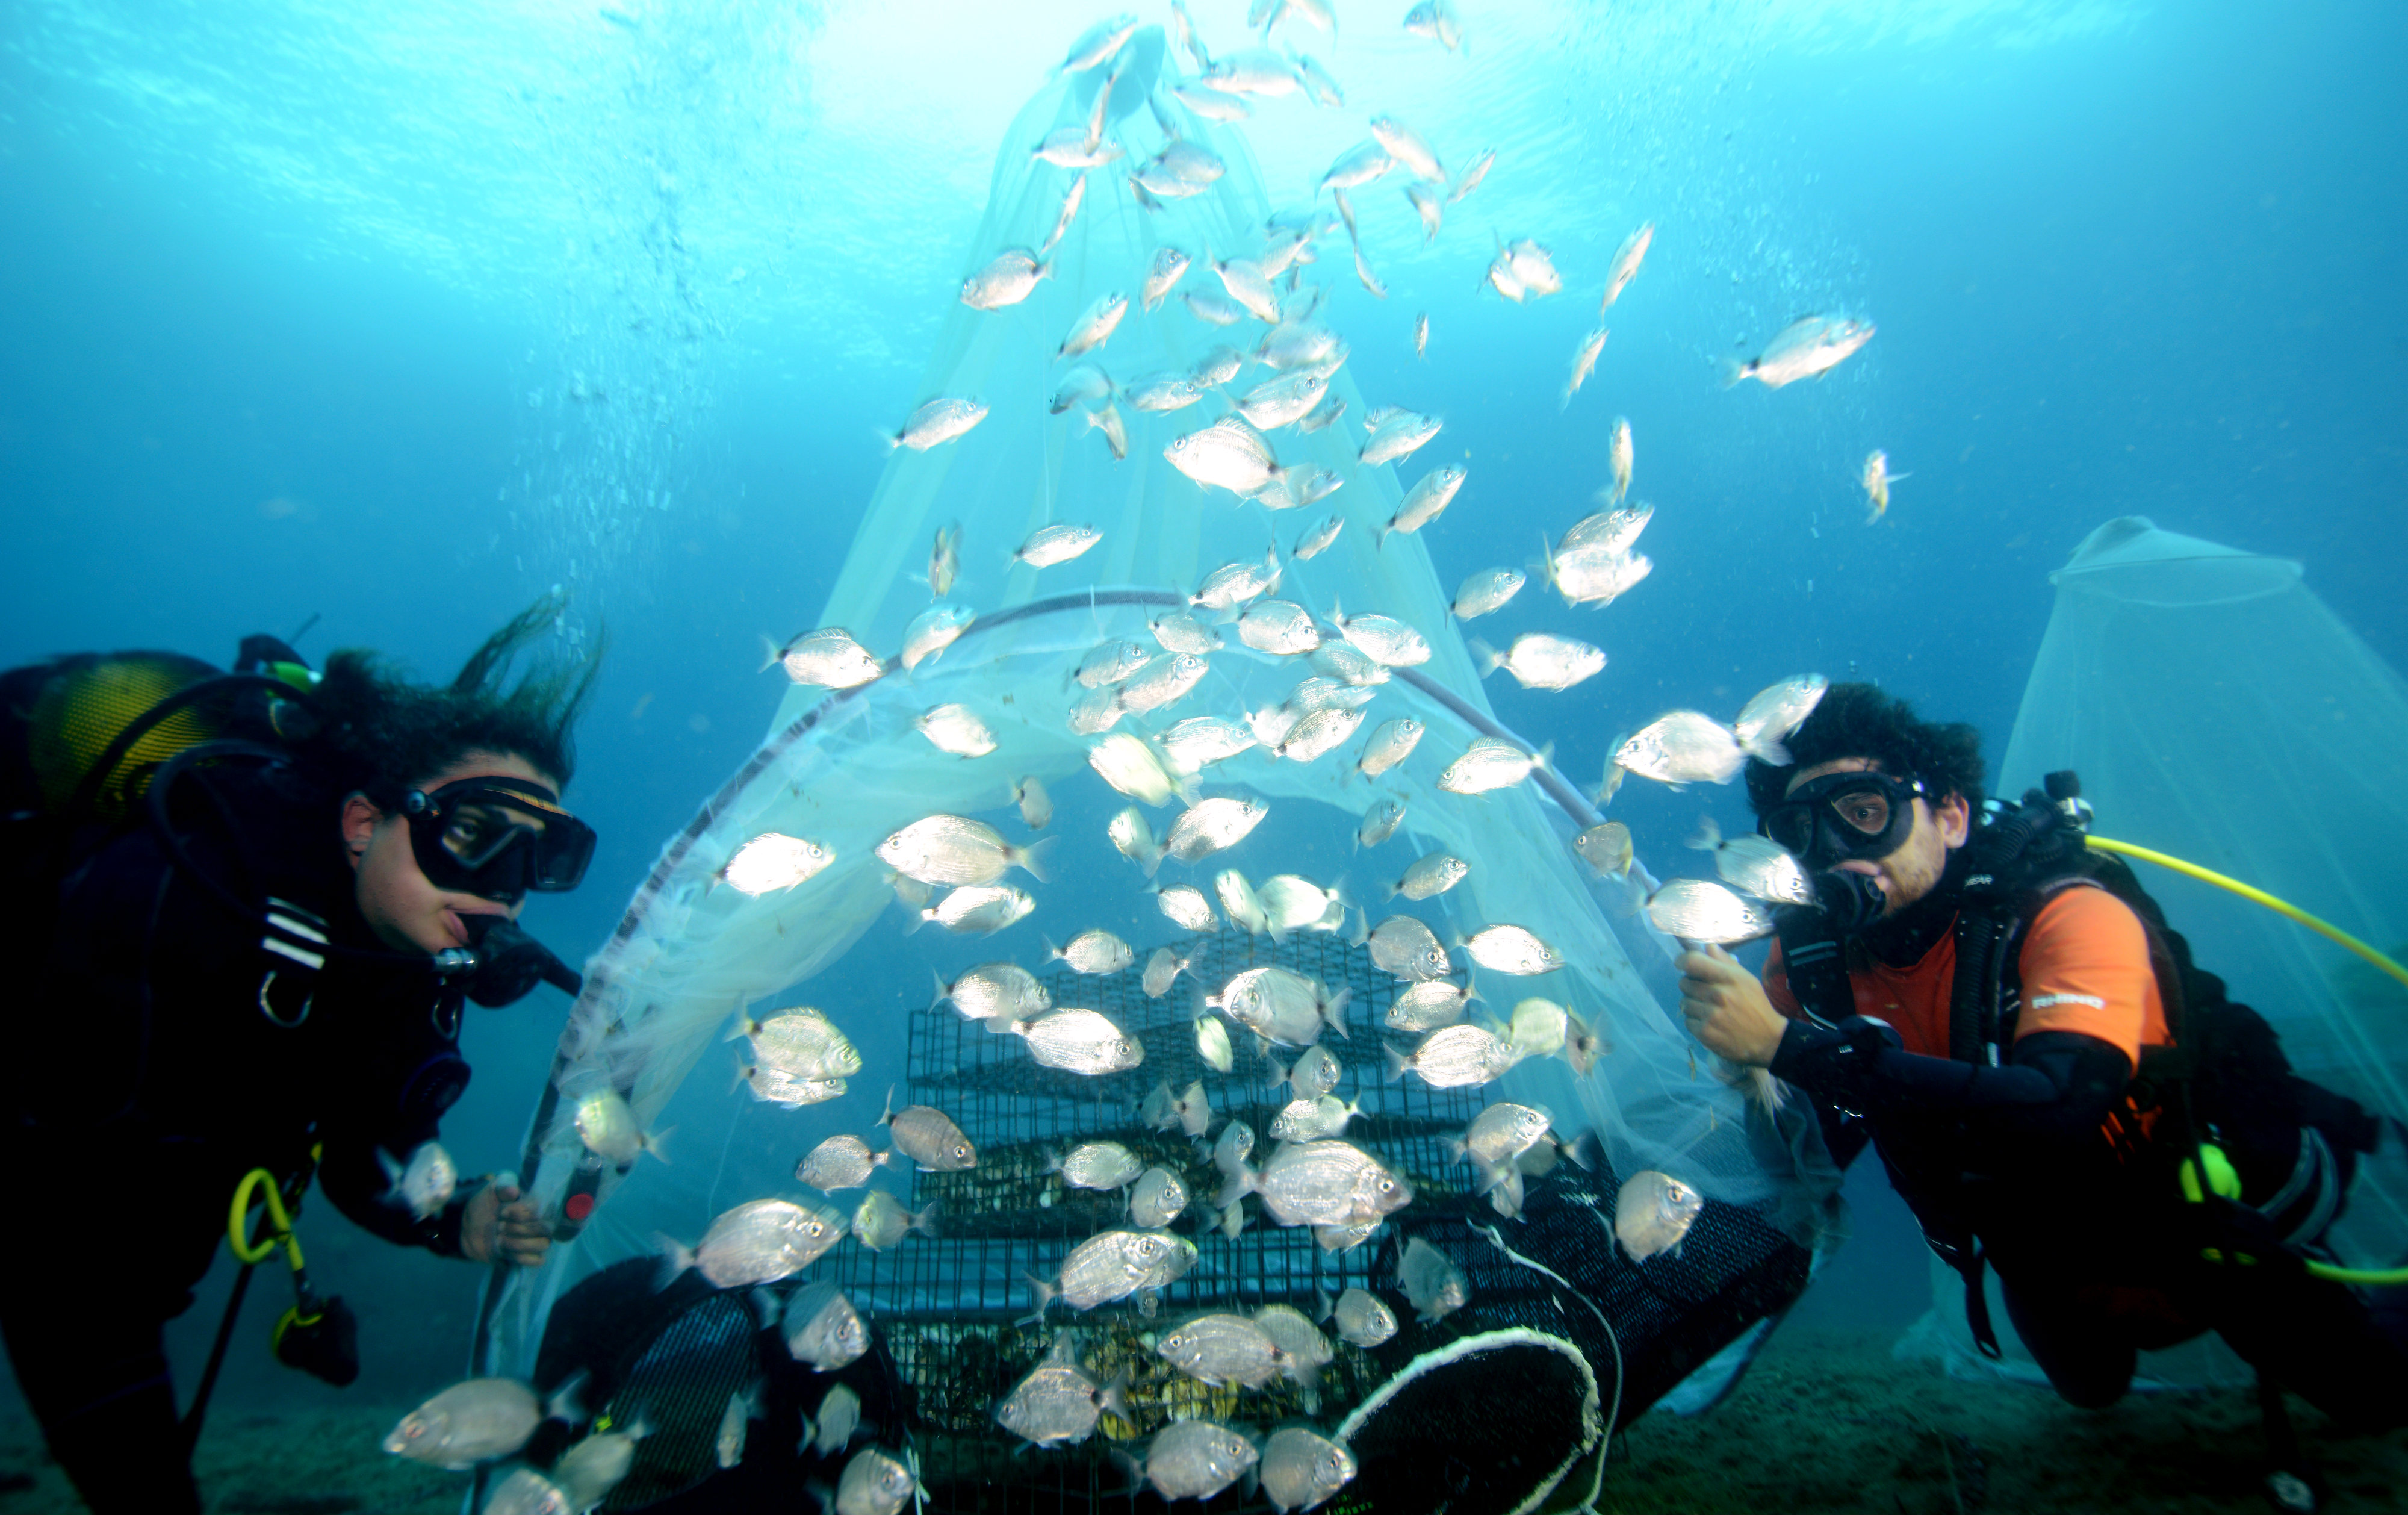 Every year the BioRestore project releases thousands of fish raised in captivity back into the wild.